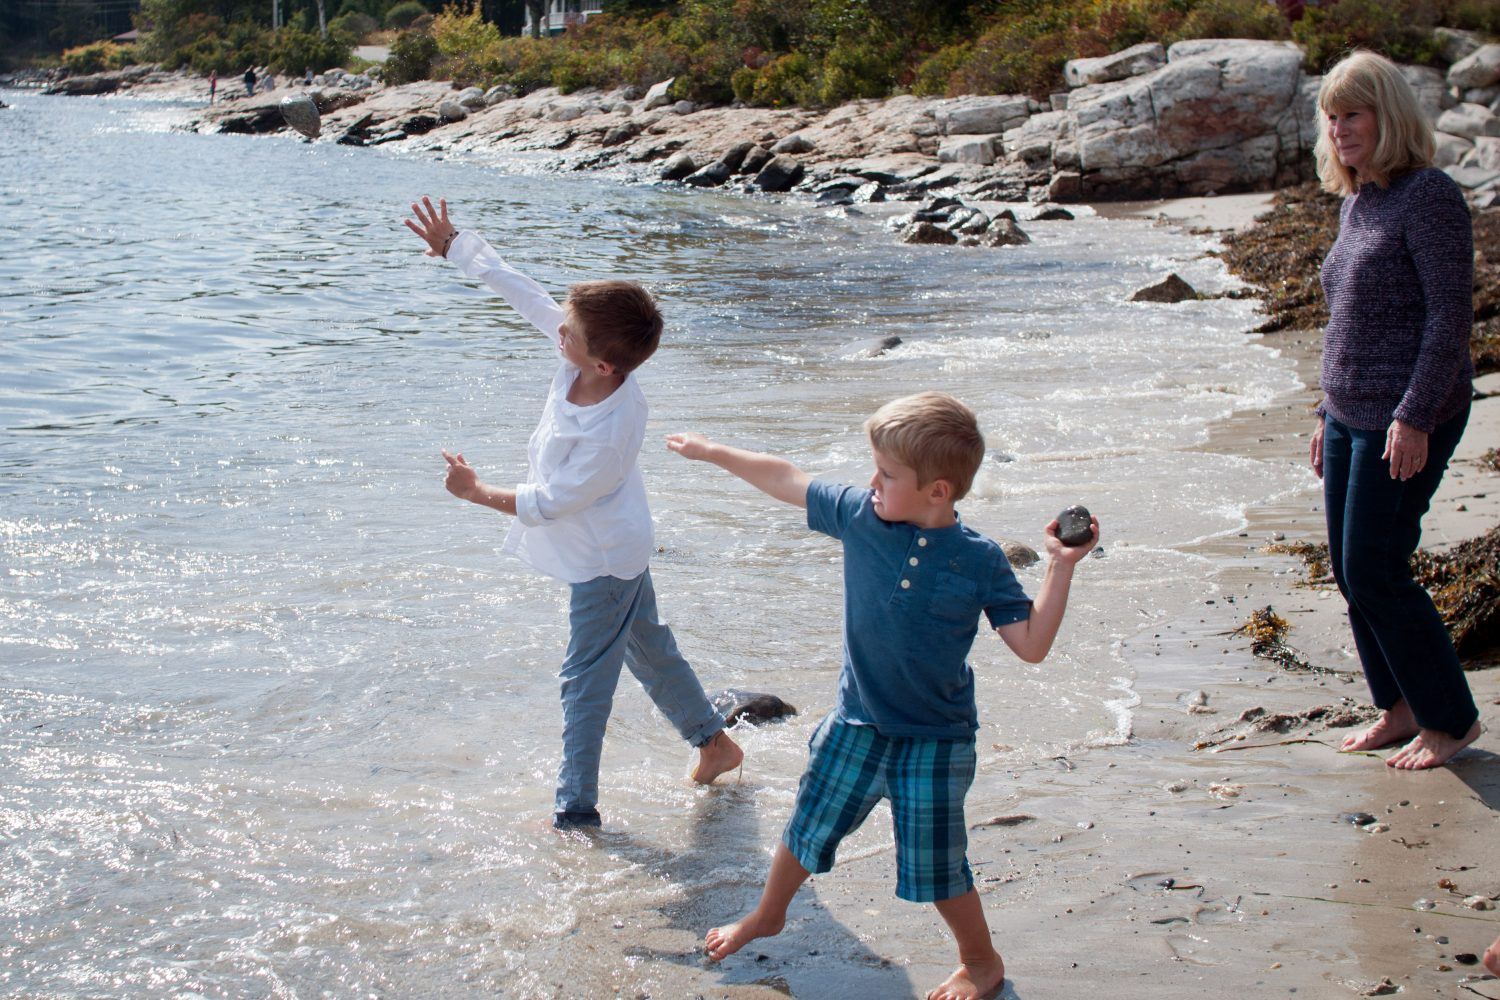 two young brothers throwing rocks into the water while grandmother watches